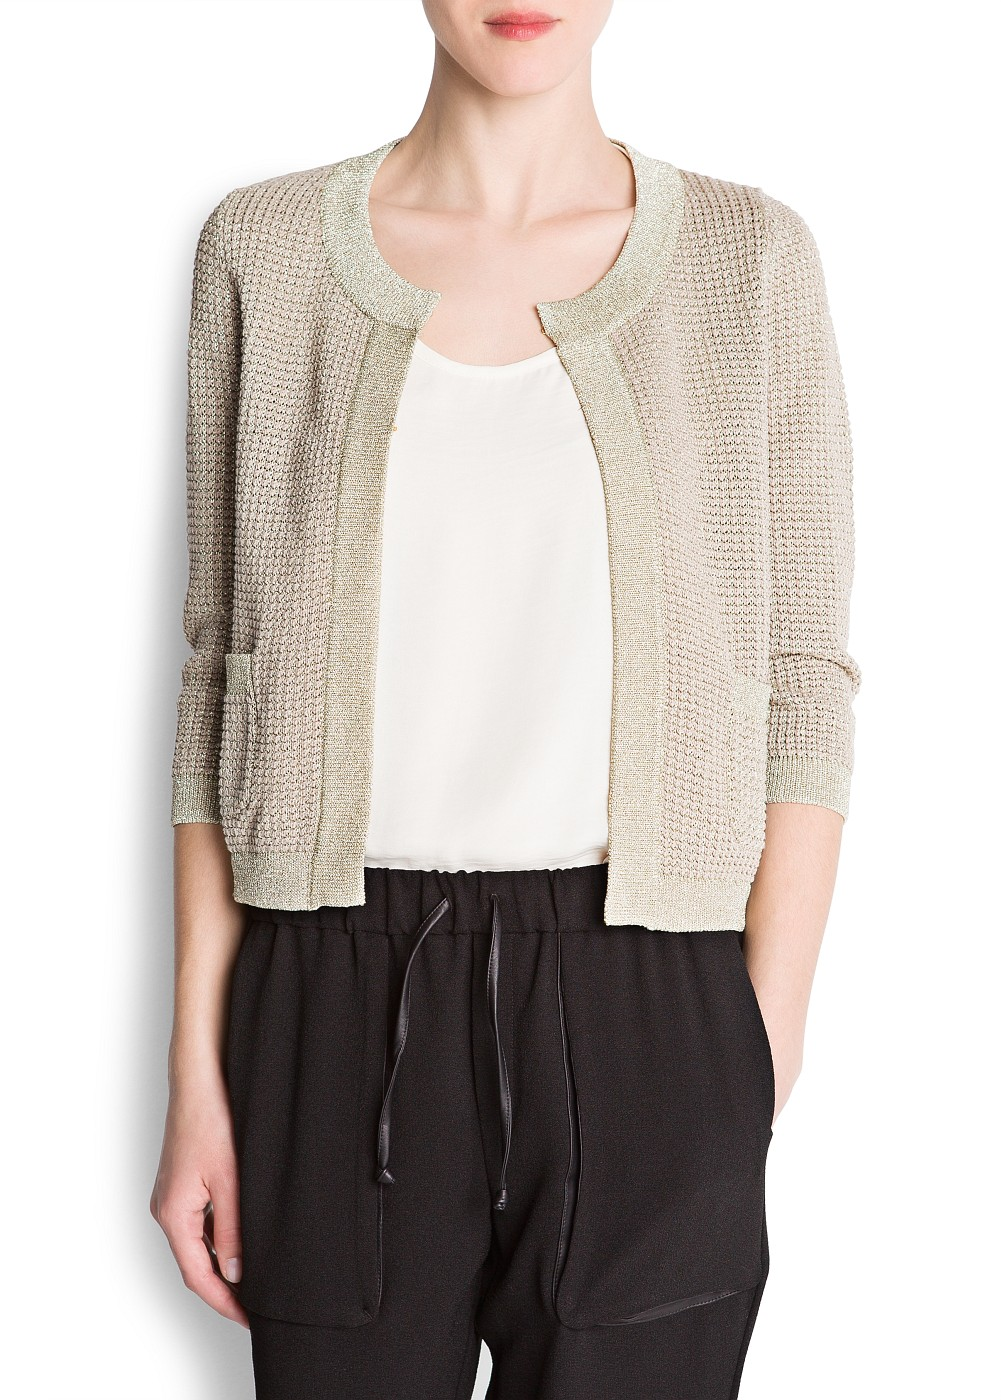 Mango Cardigan Amazon in Metallic | Lyst